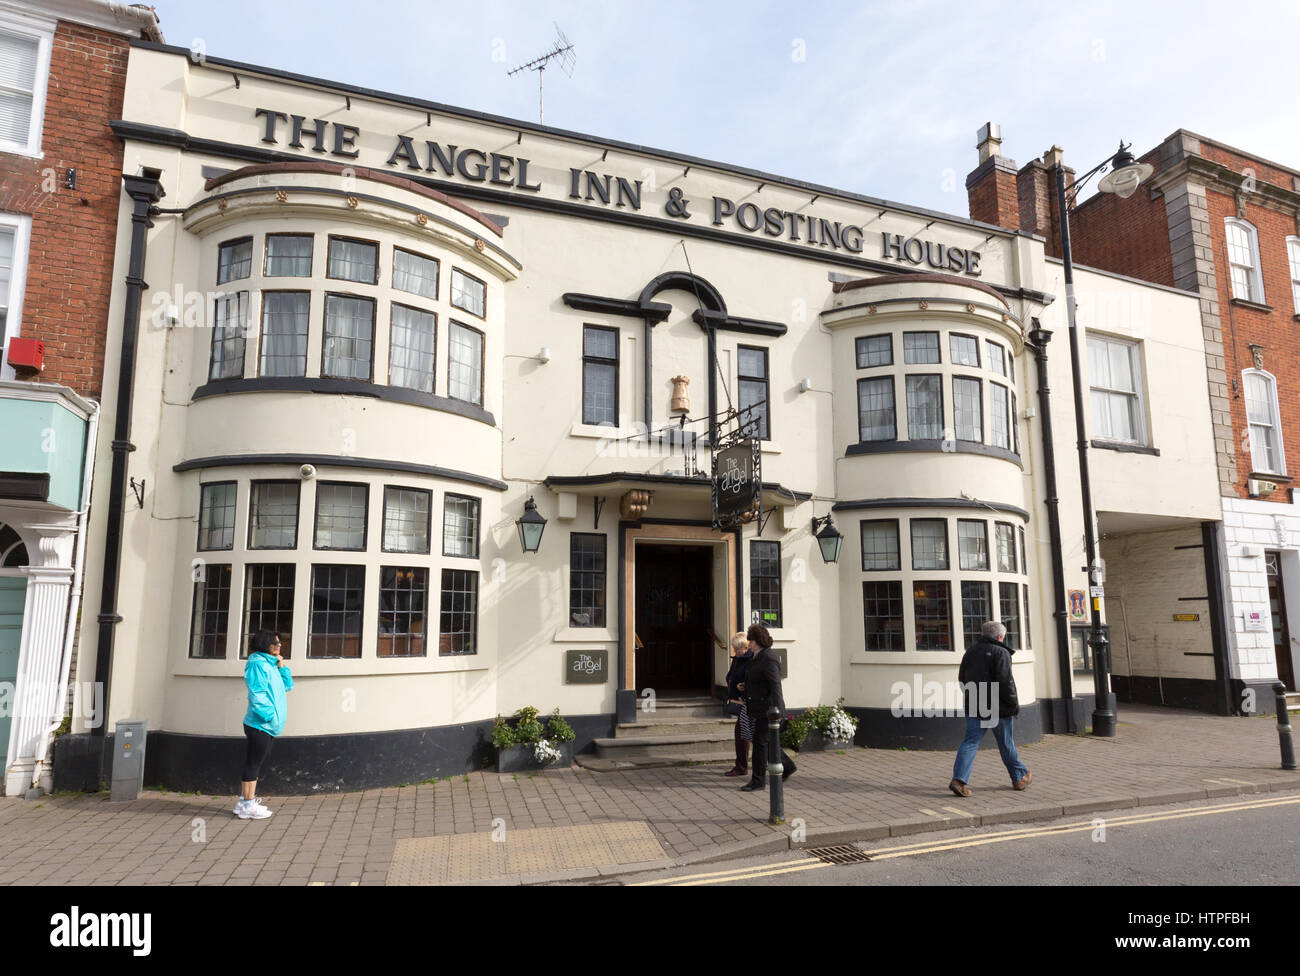 The Angel Inn & Posting House AKA The Angel Hotel, High Street, Pershore, Worcestershire England UK - Stock Image